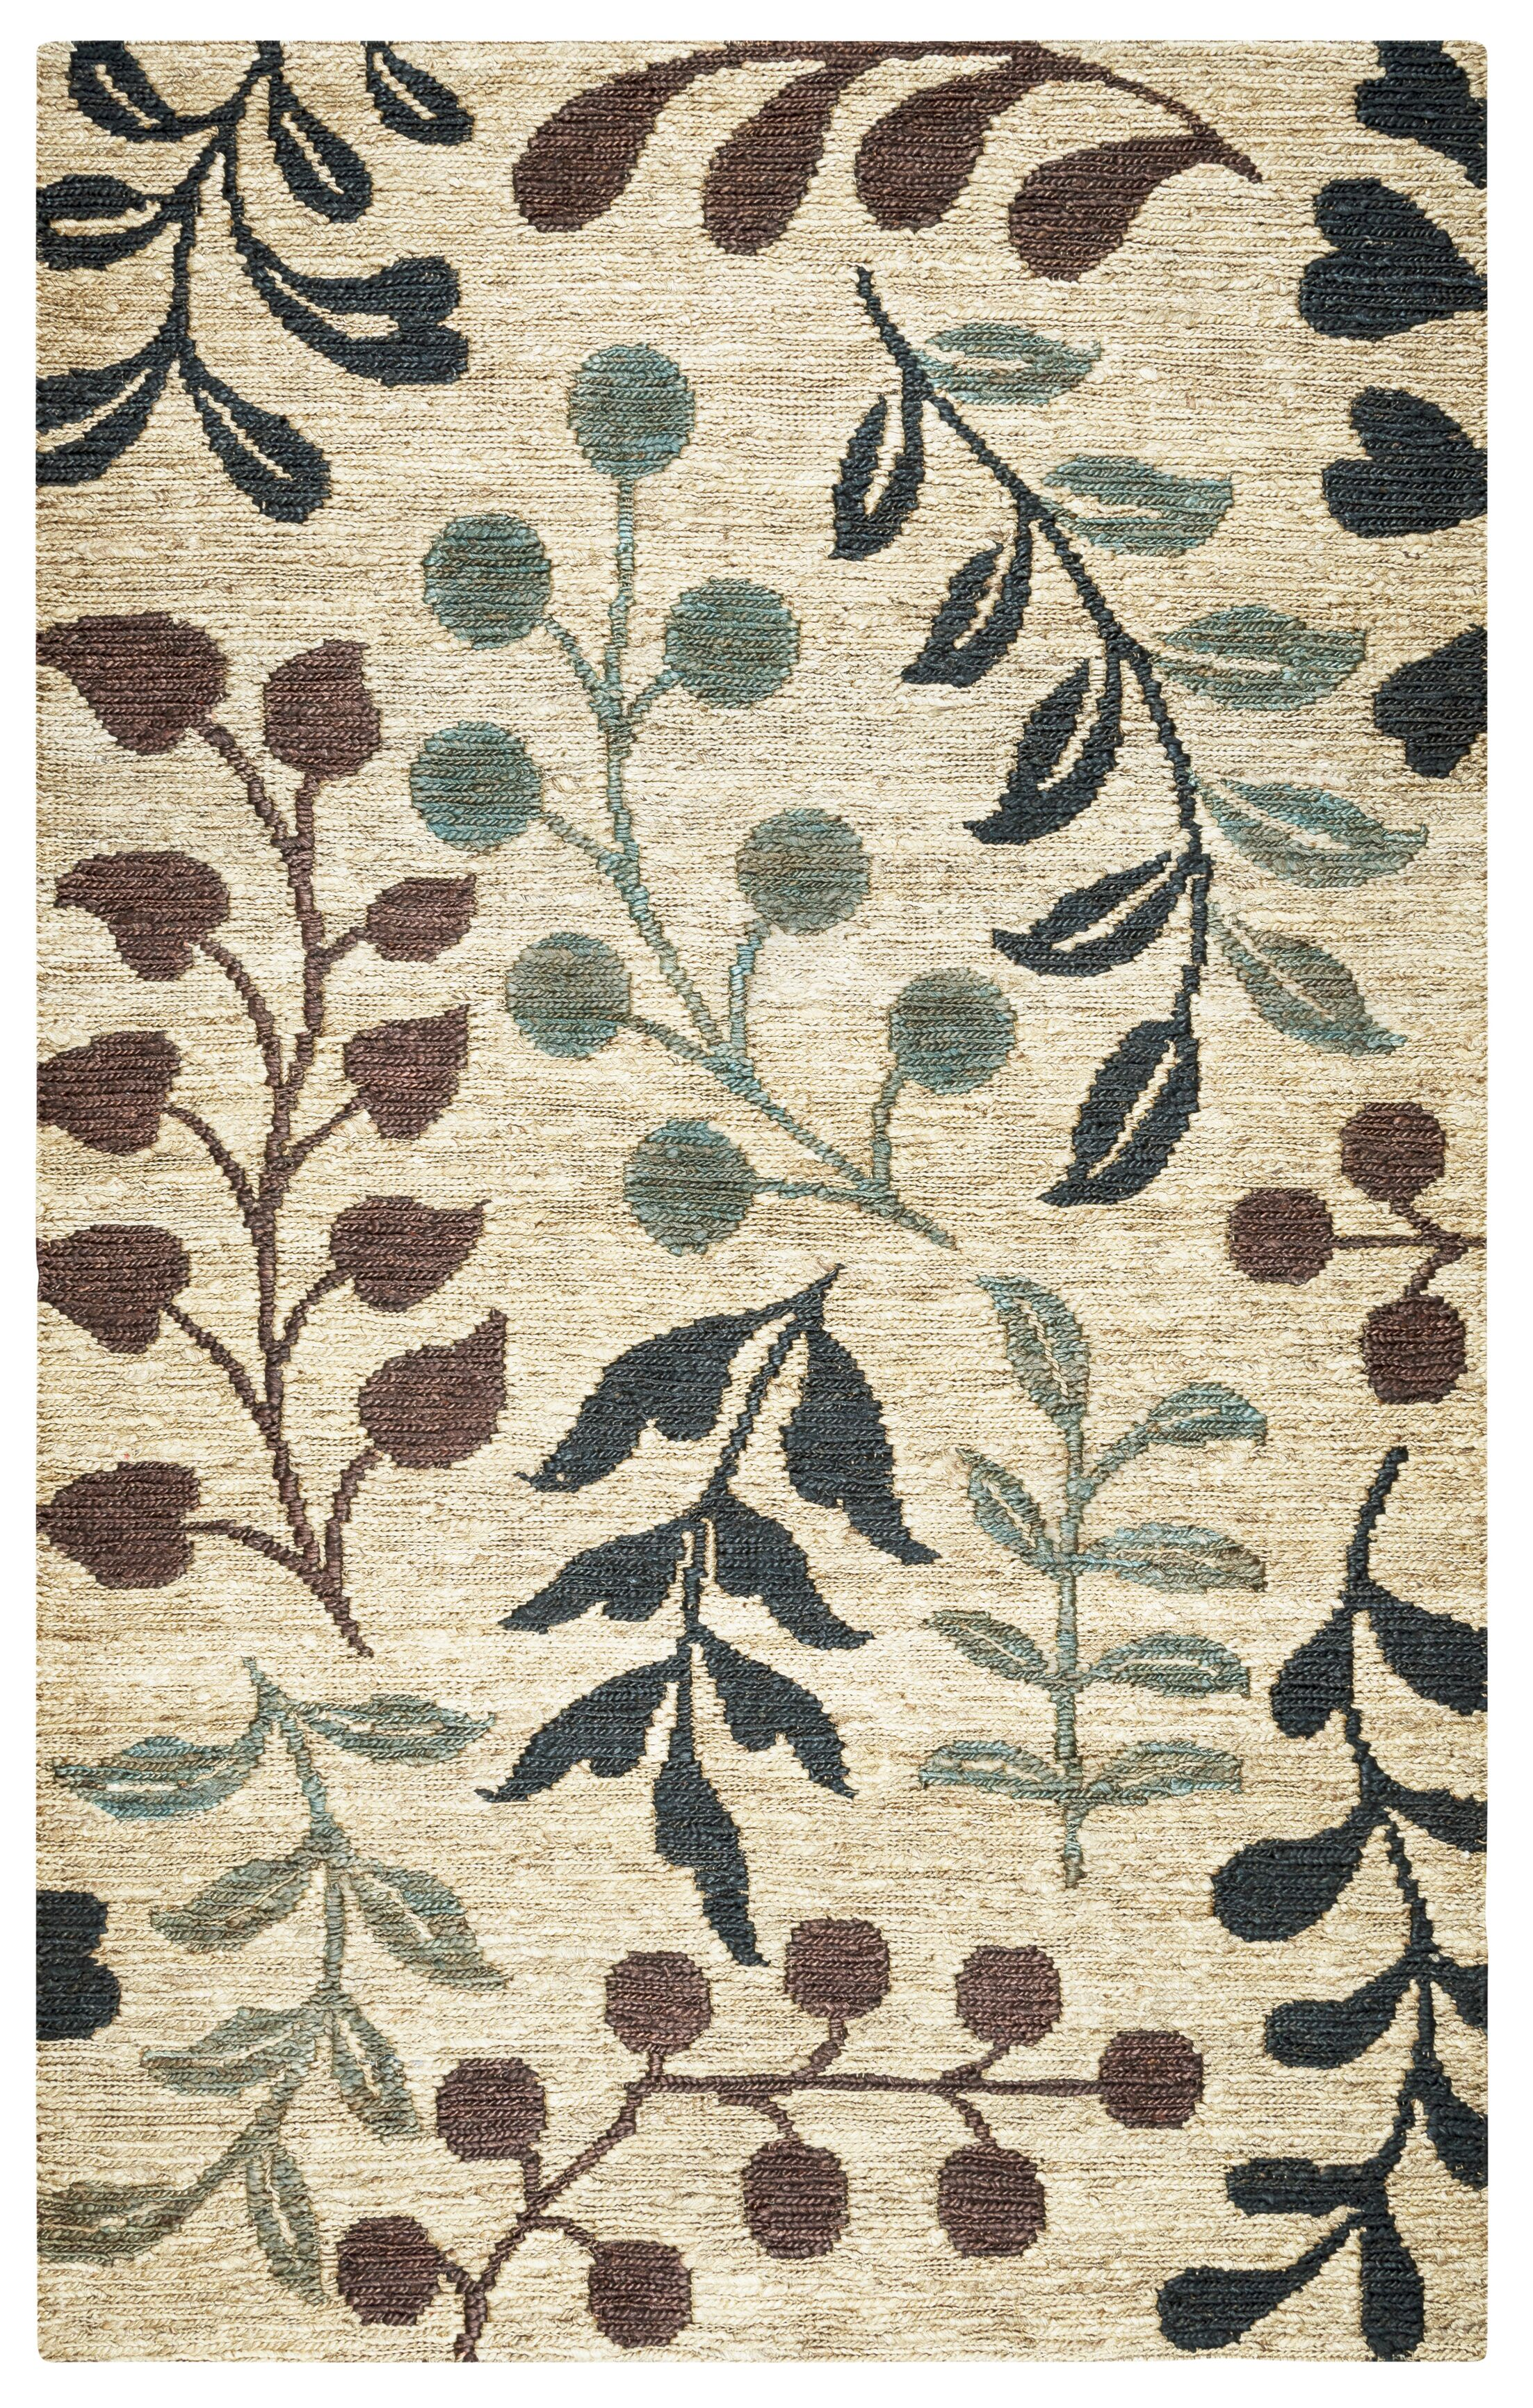 Barrett Hand-Woven Natural Area Rug Size: Rectangle 3' x 5'